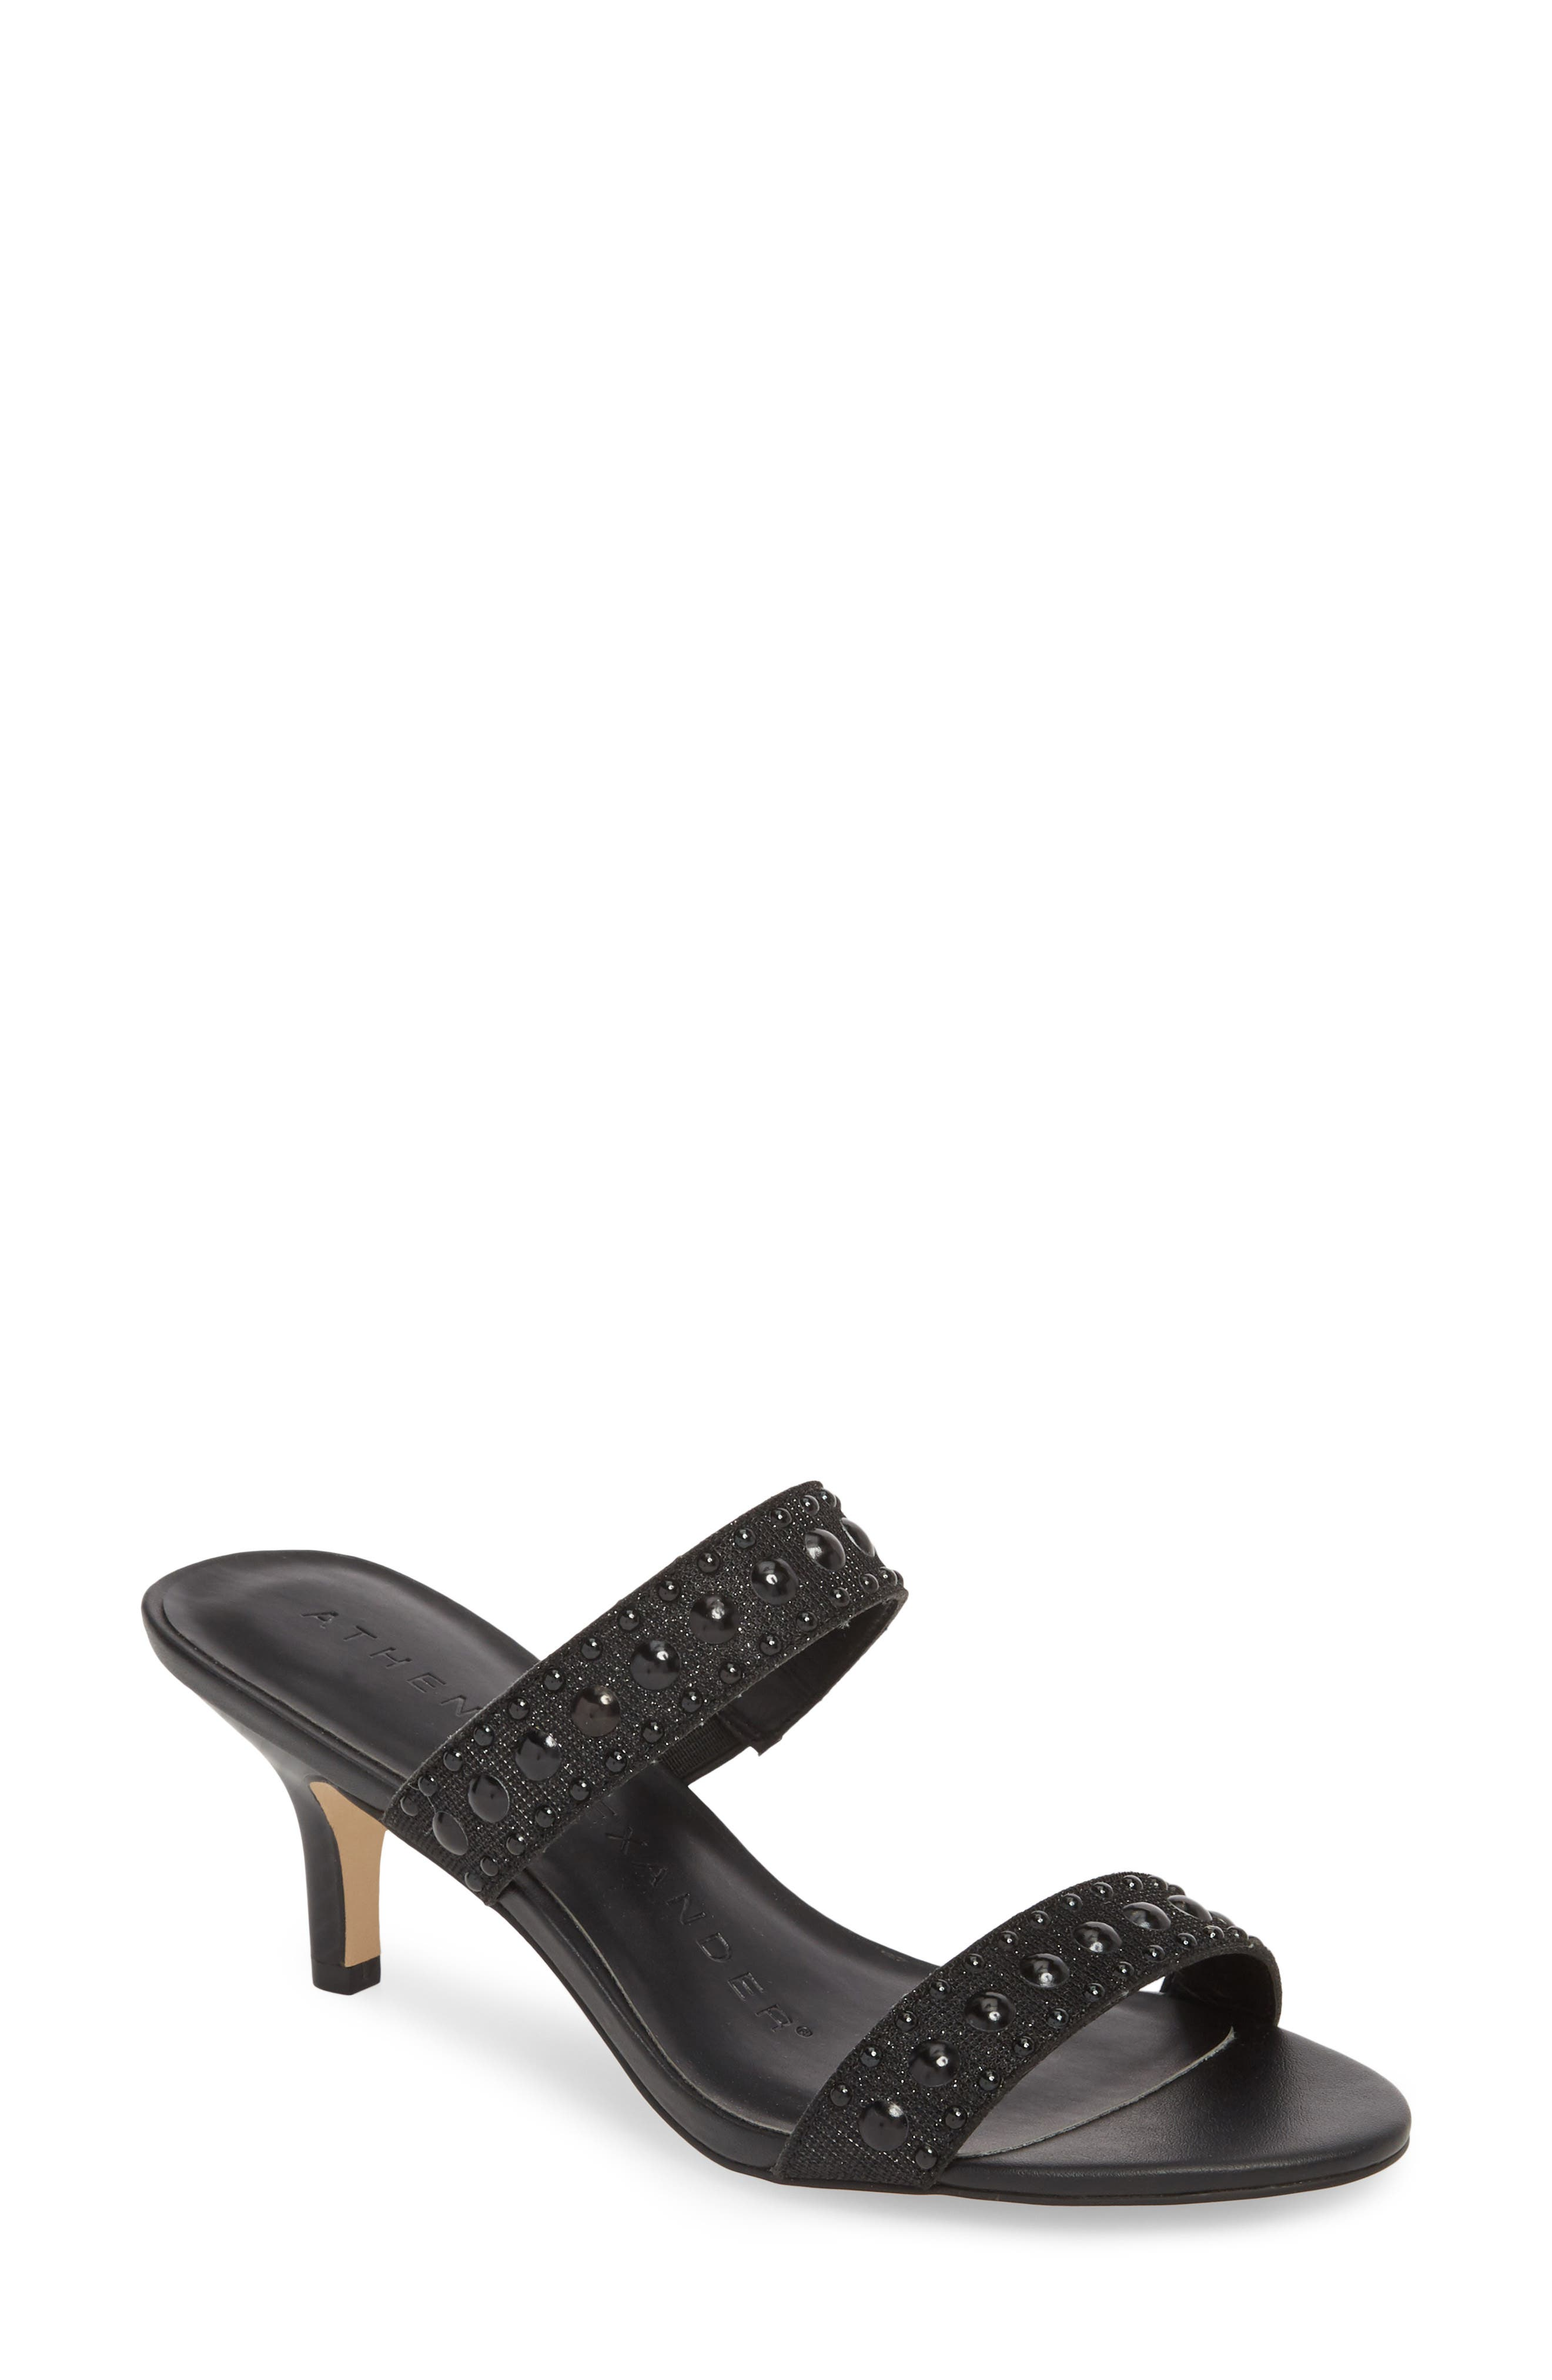 ATHENA ALEXANDER,                             Jettie Studded Mule,                             Main thumbnail 1, color,                             001